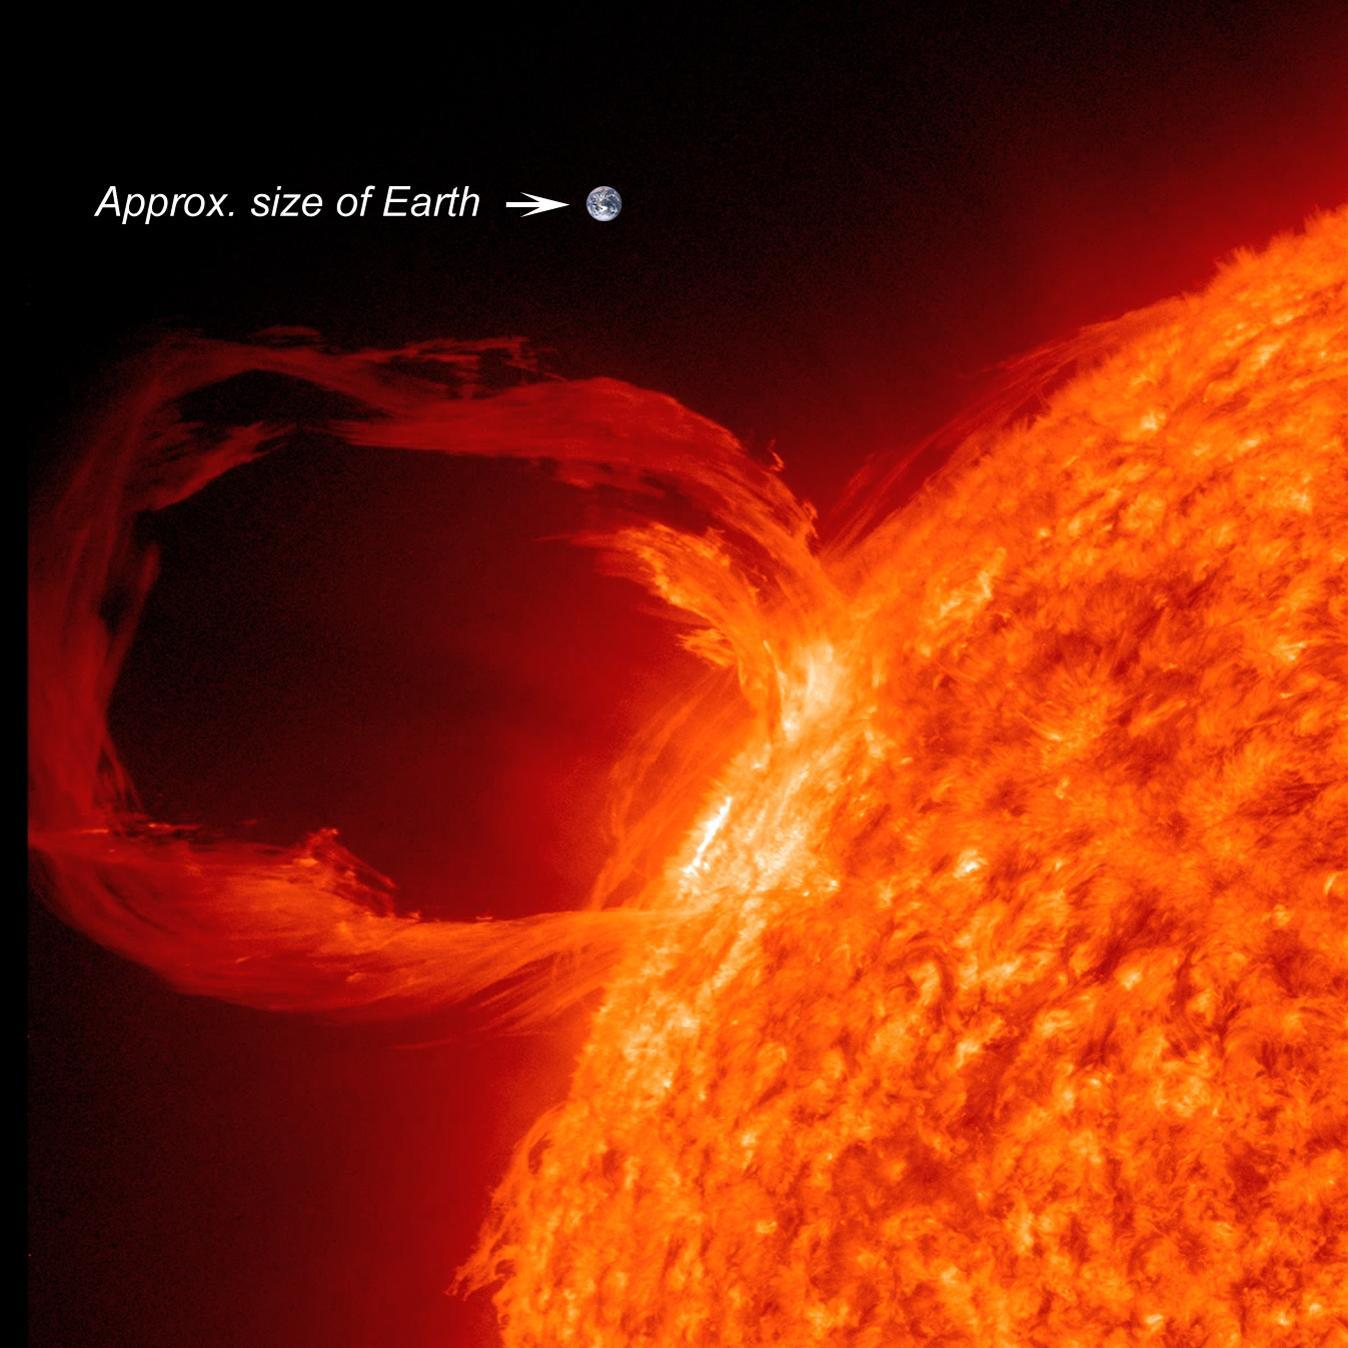 hight resolution of a solar prominence eruption with earth provided for scale